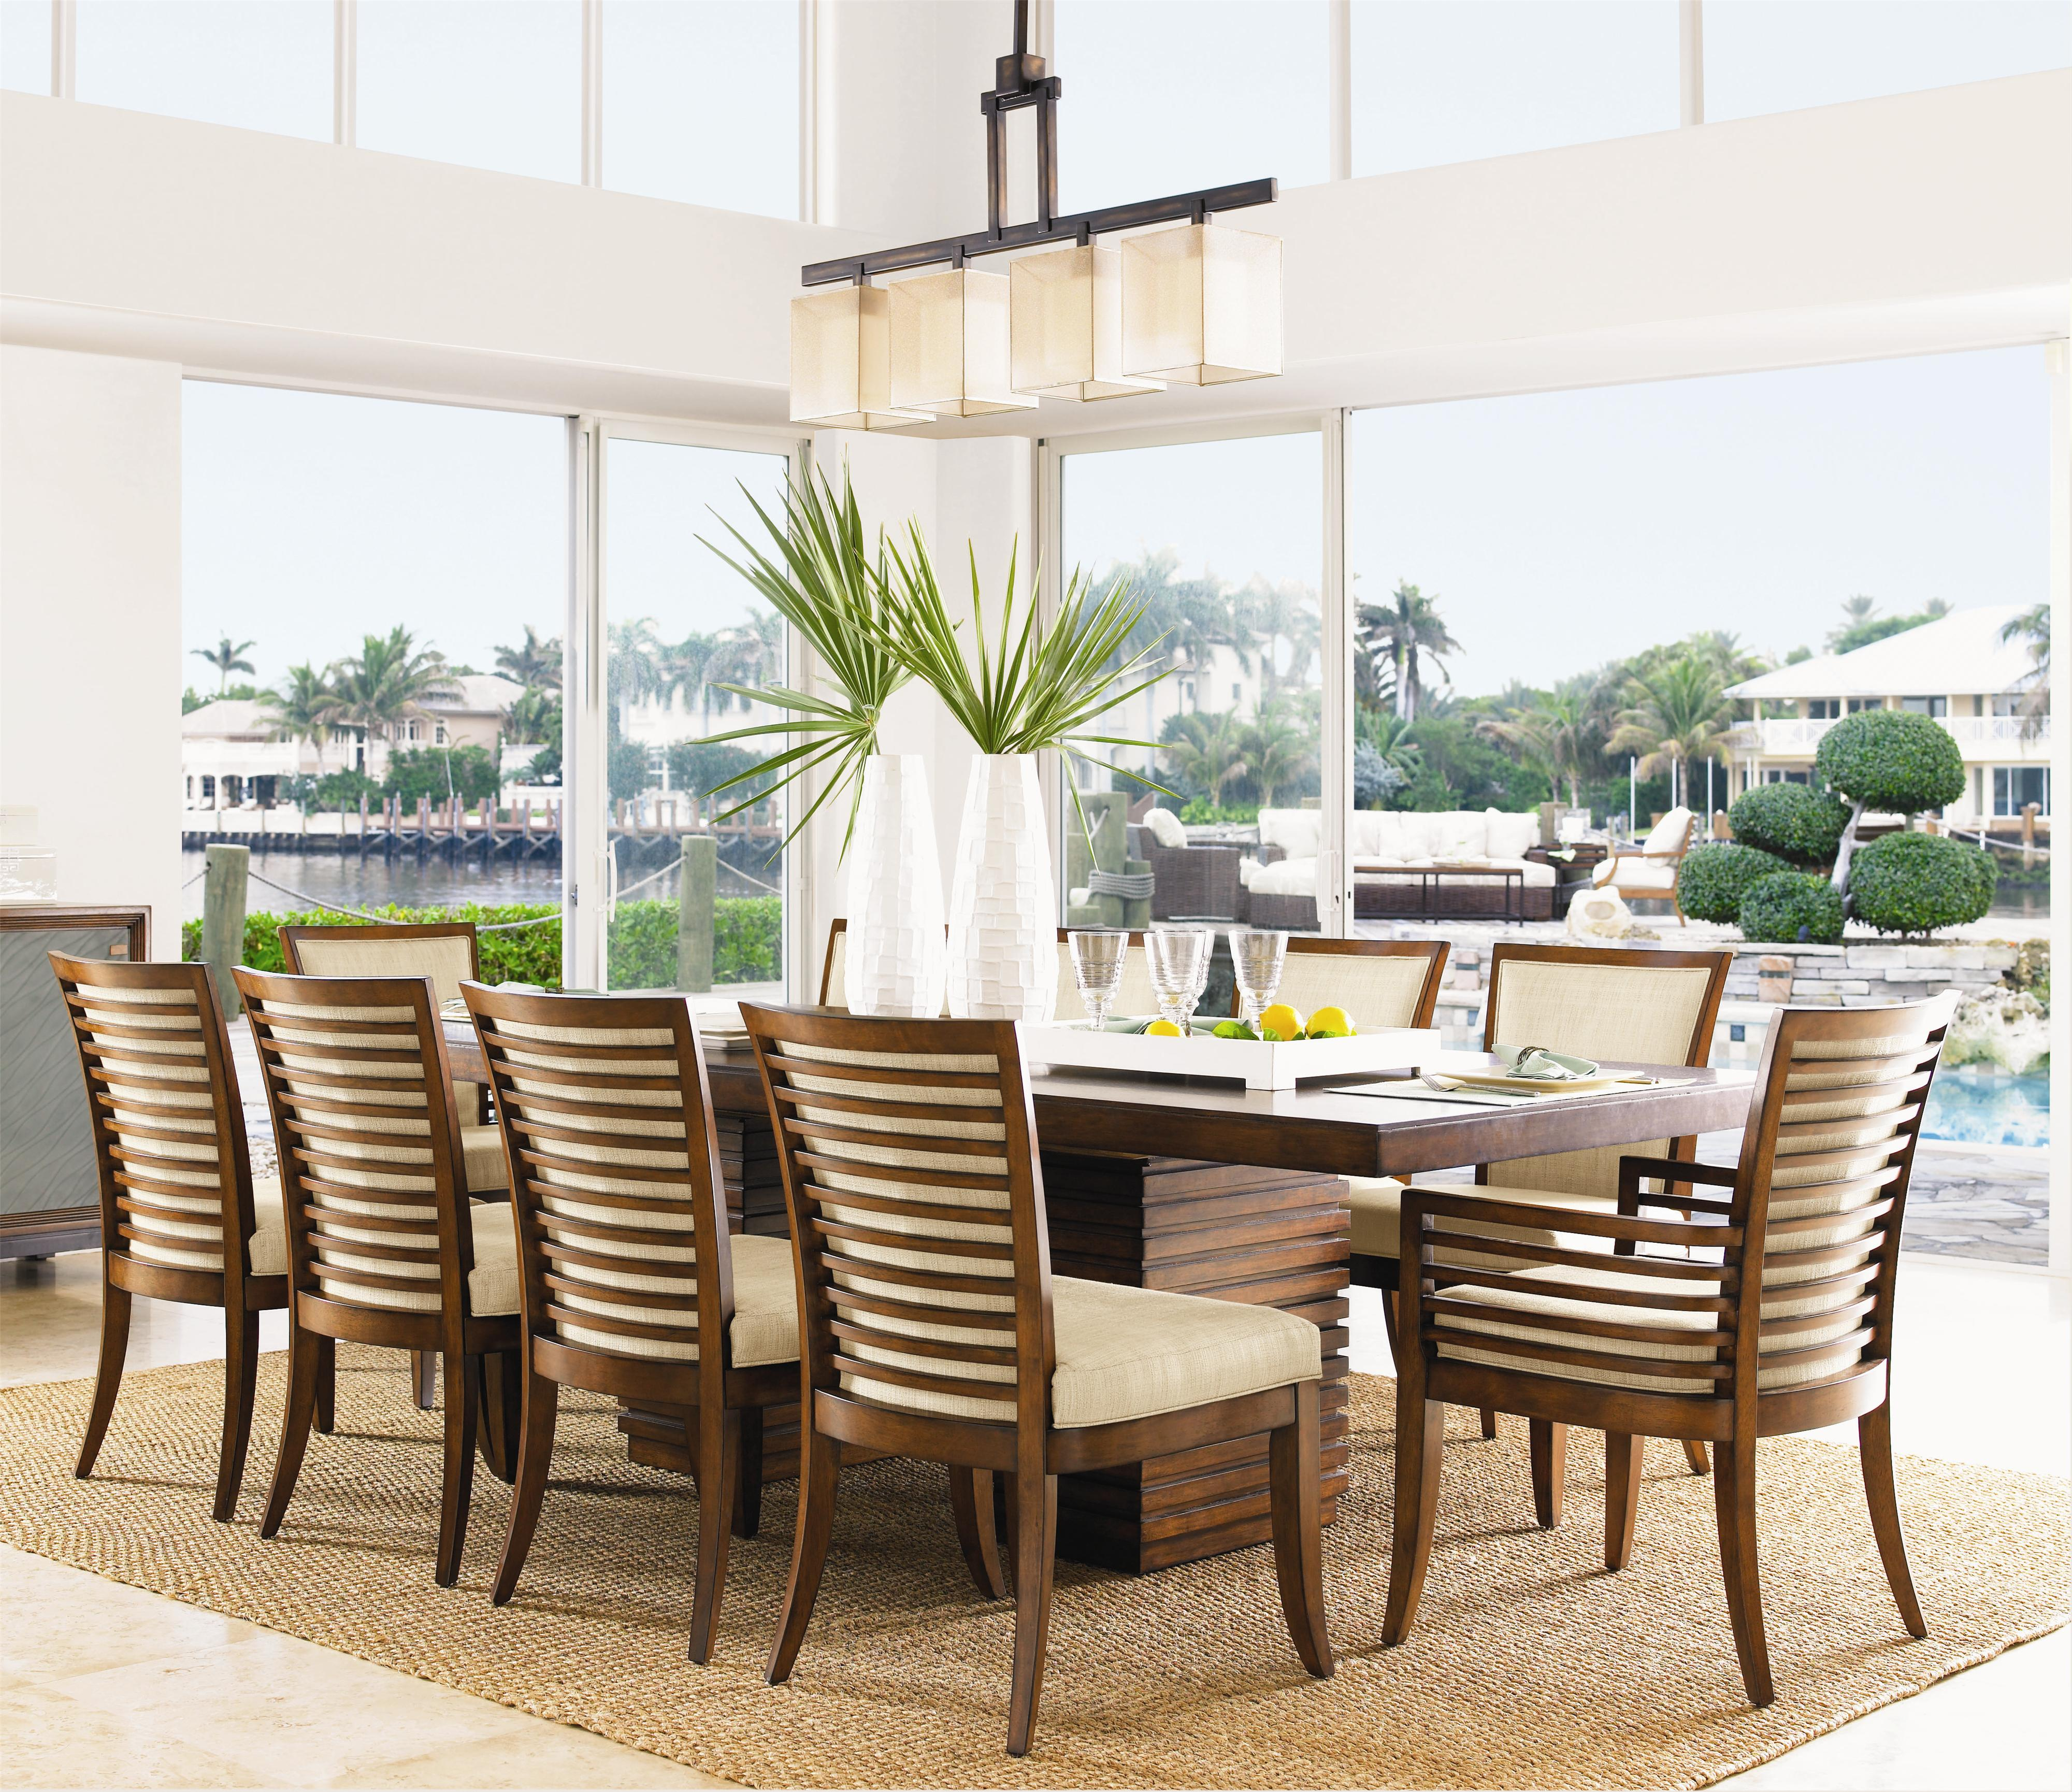 Tommy Bahama Dining Room Furniture Collection Ocean Club 536 By Tommy Bahama Home Baer39s Furniture Tommy